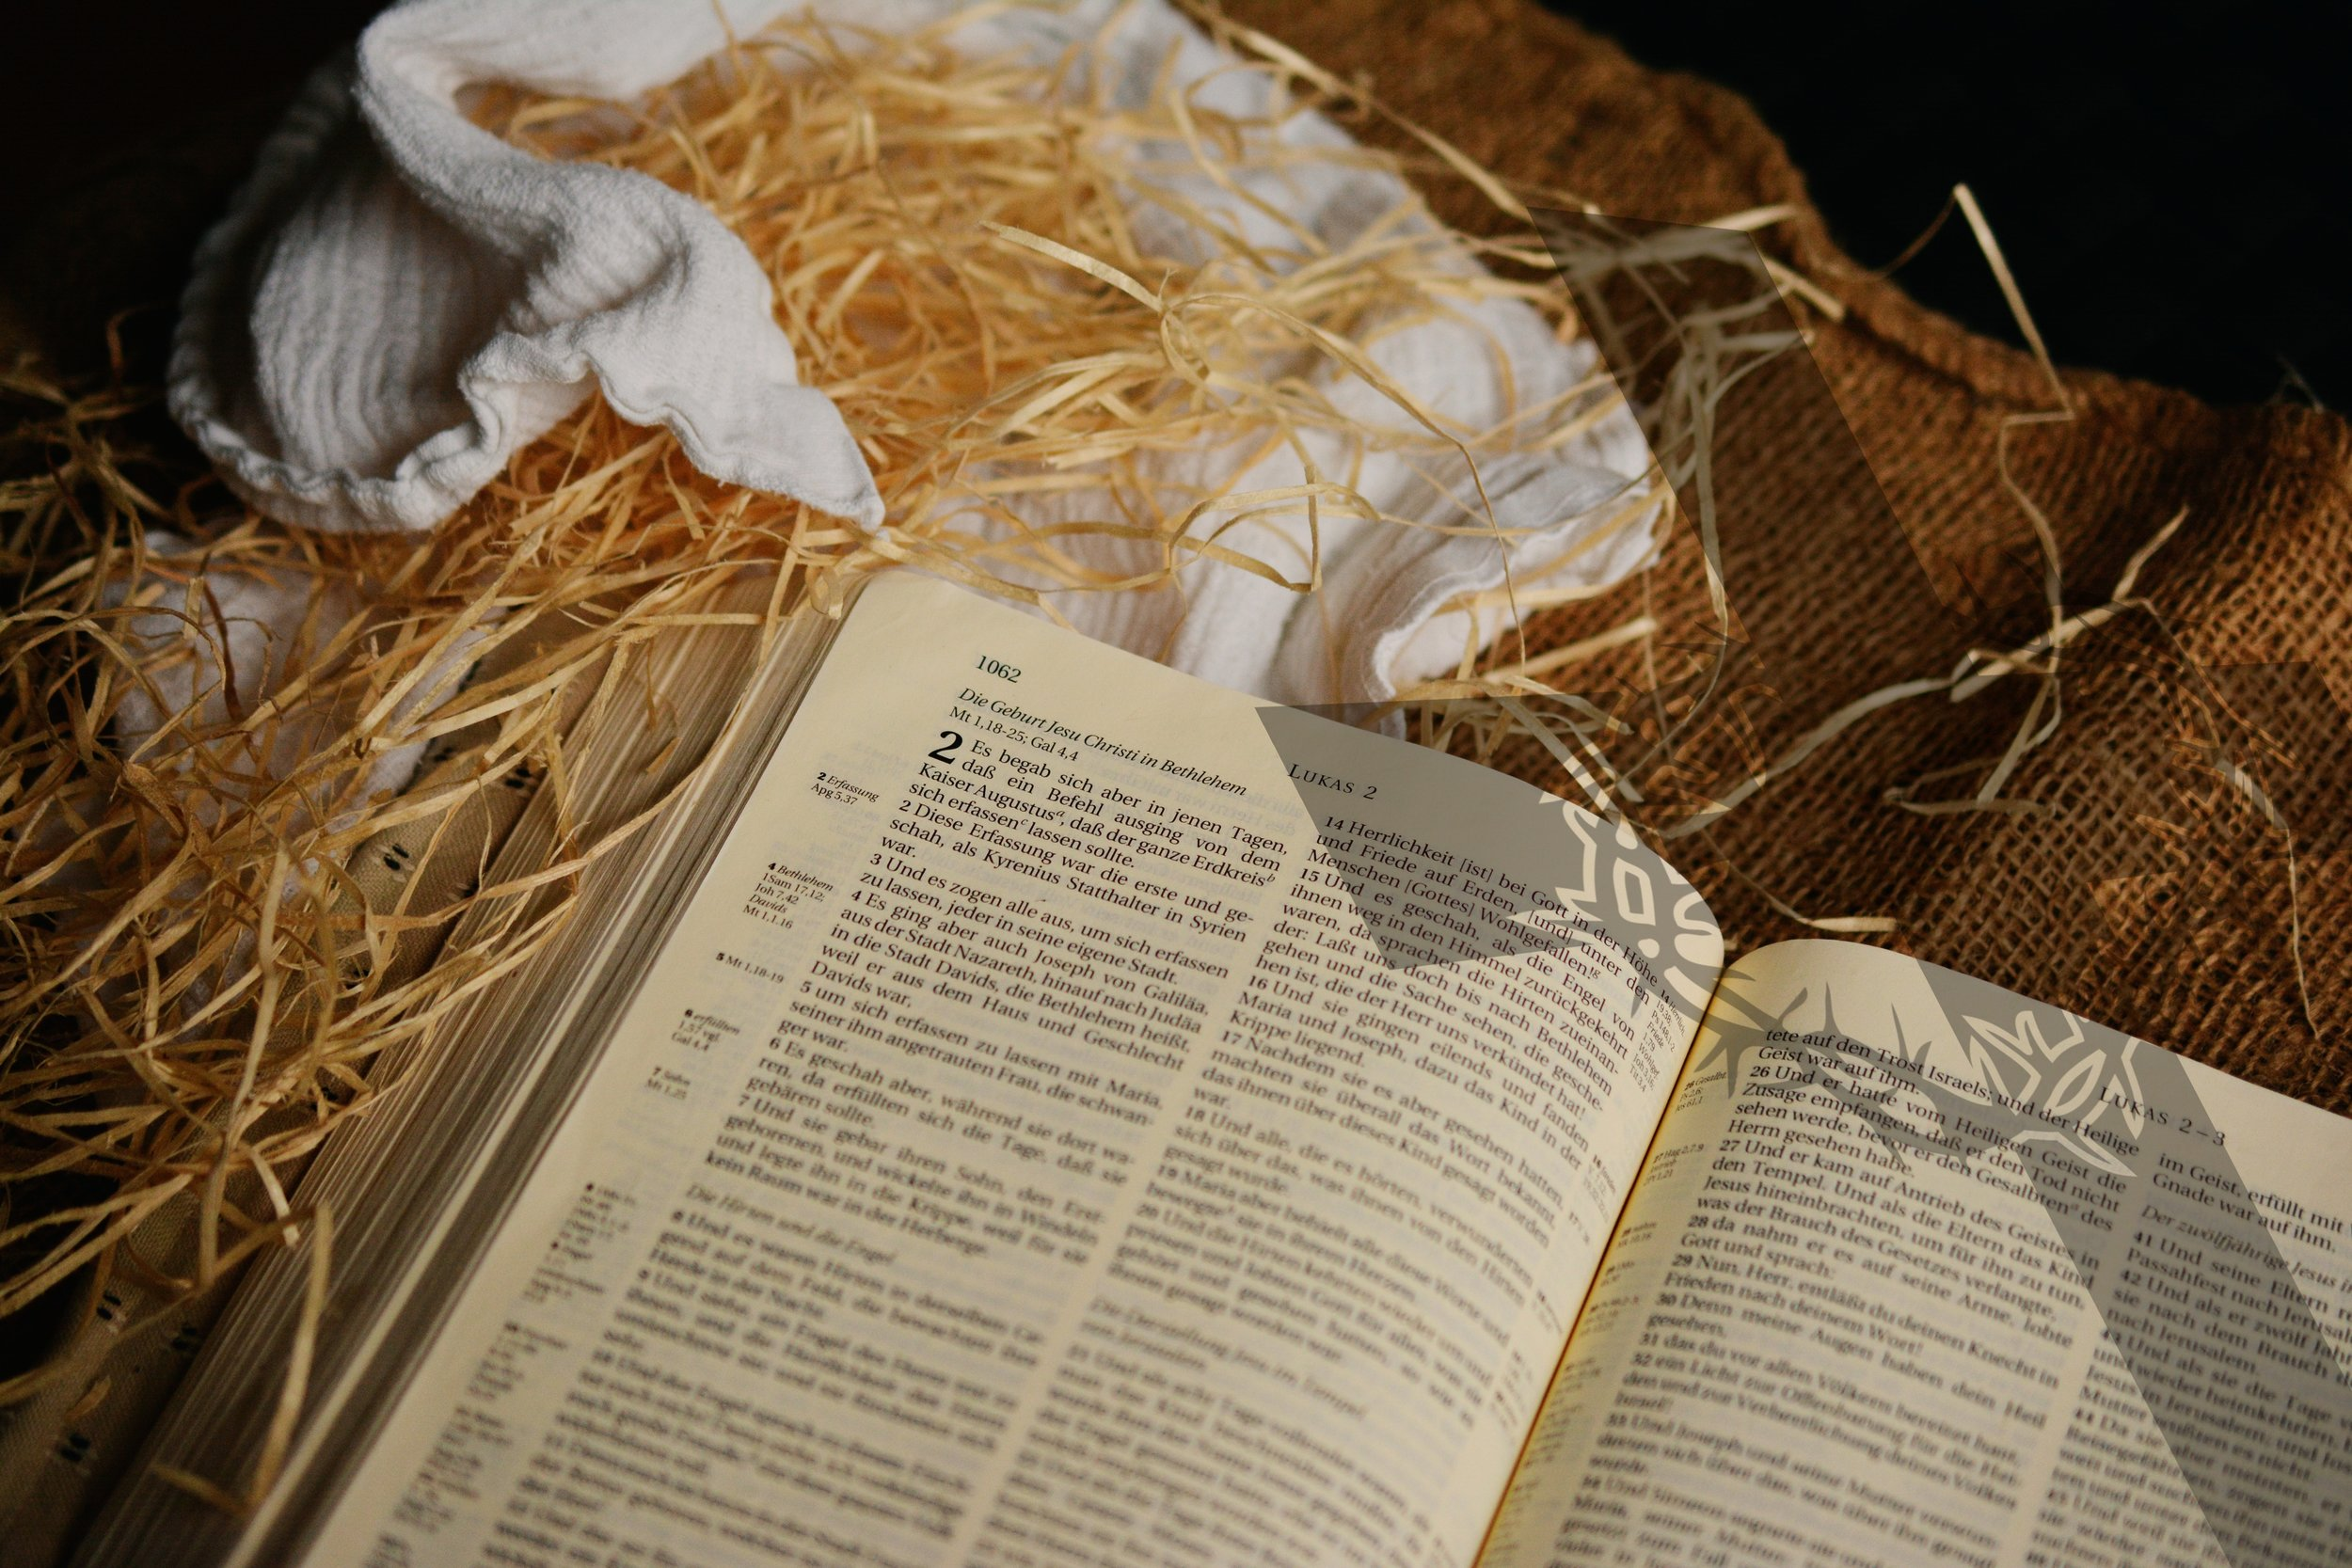 Scripture Set out in Barn